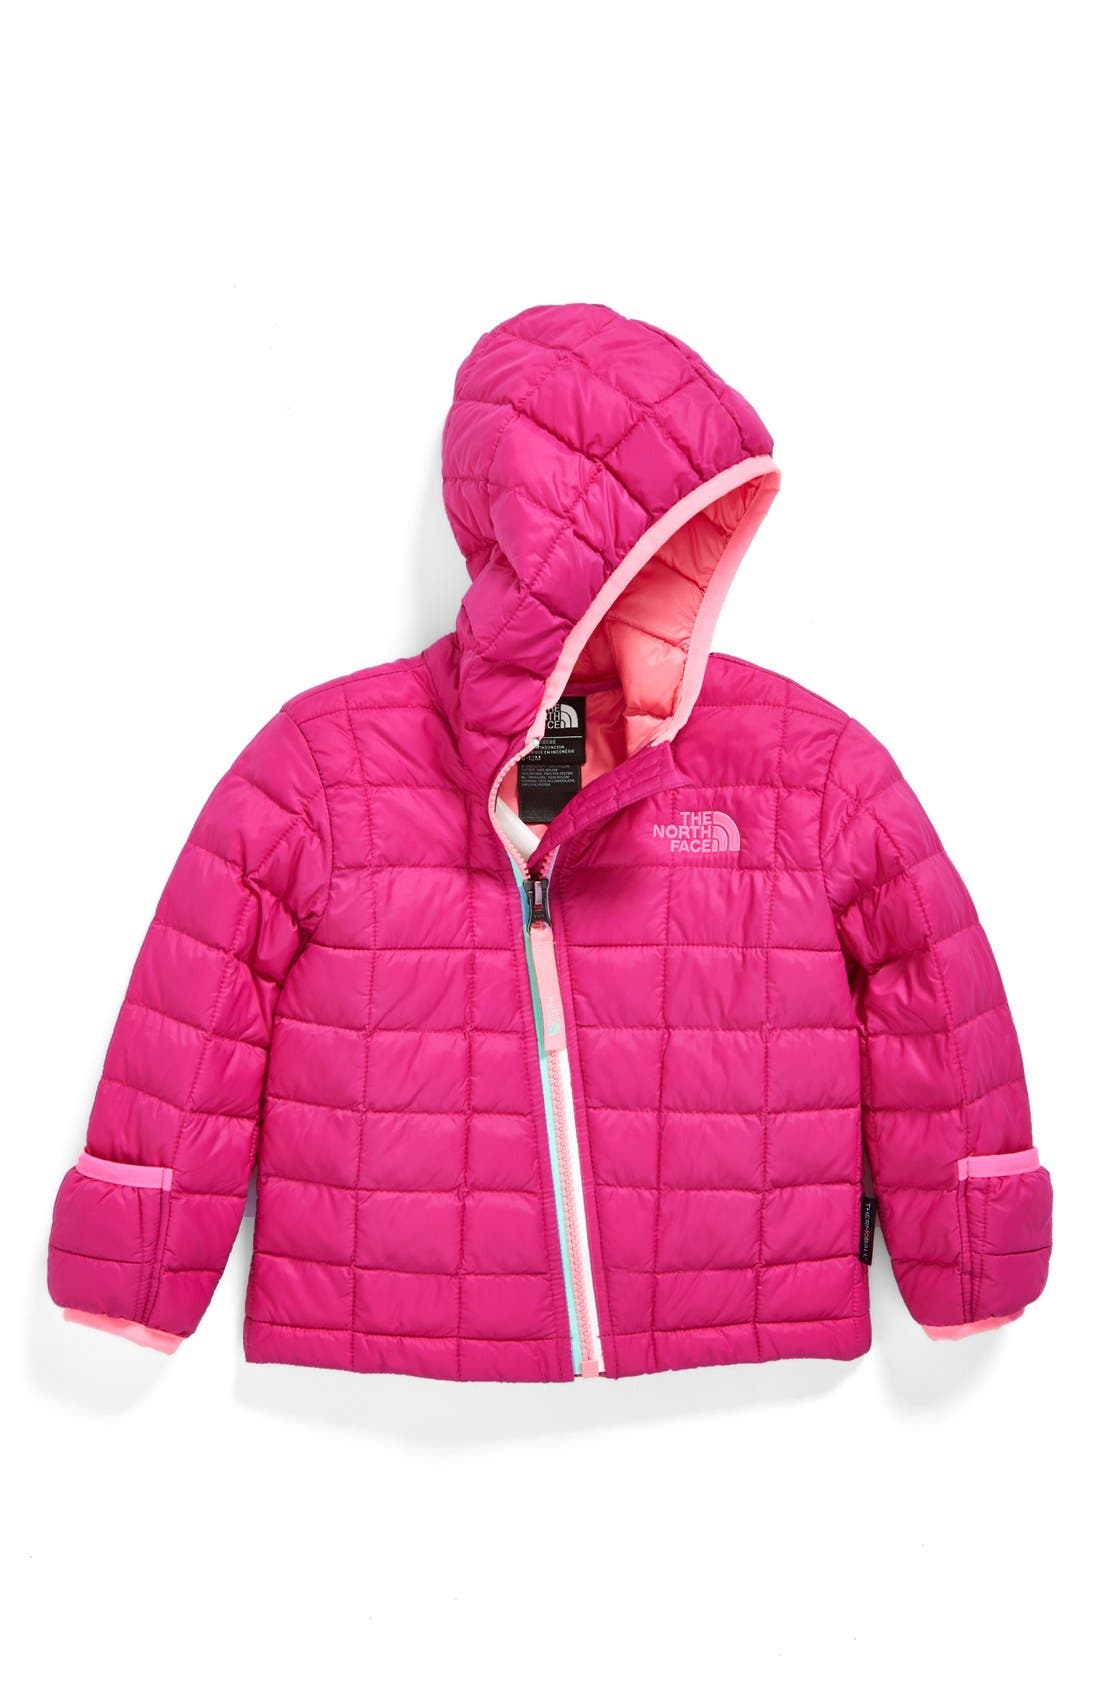 Main Image - The North Face ThermoBall™ PrimaLoft® Hoodie Jacket (Baby Girls)